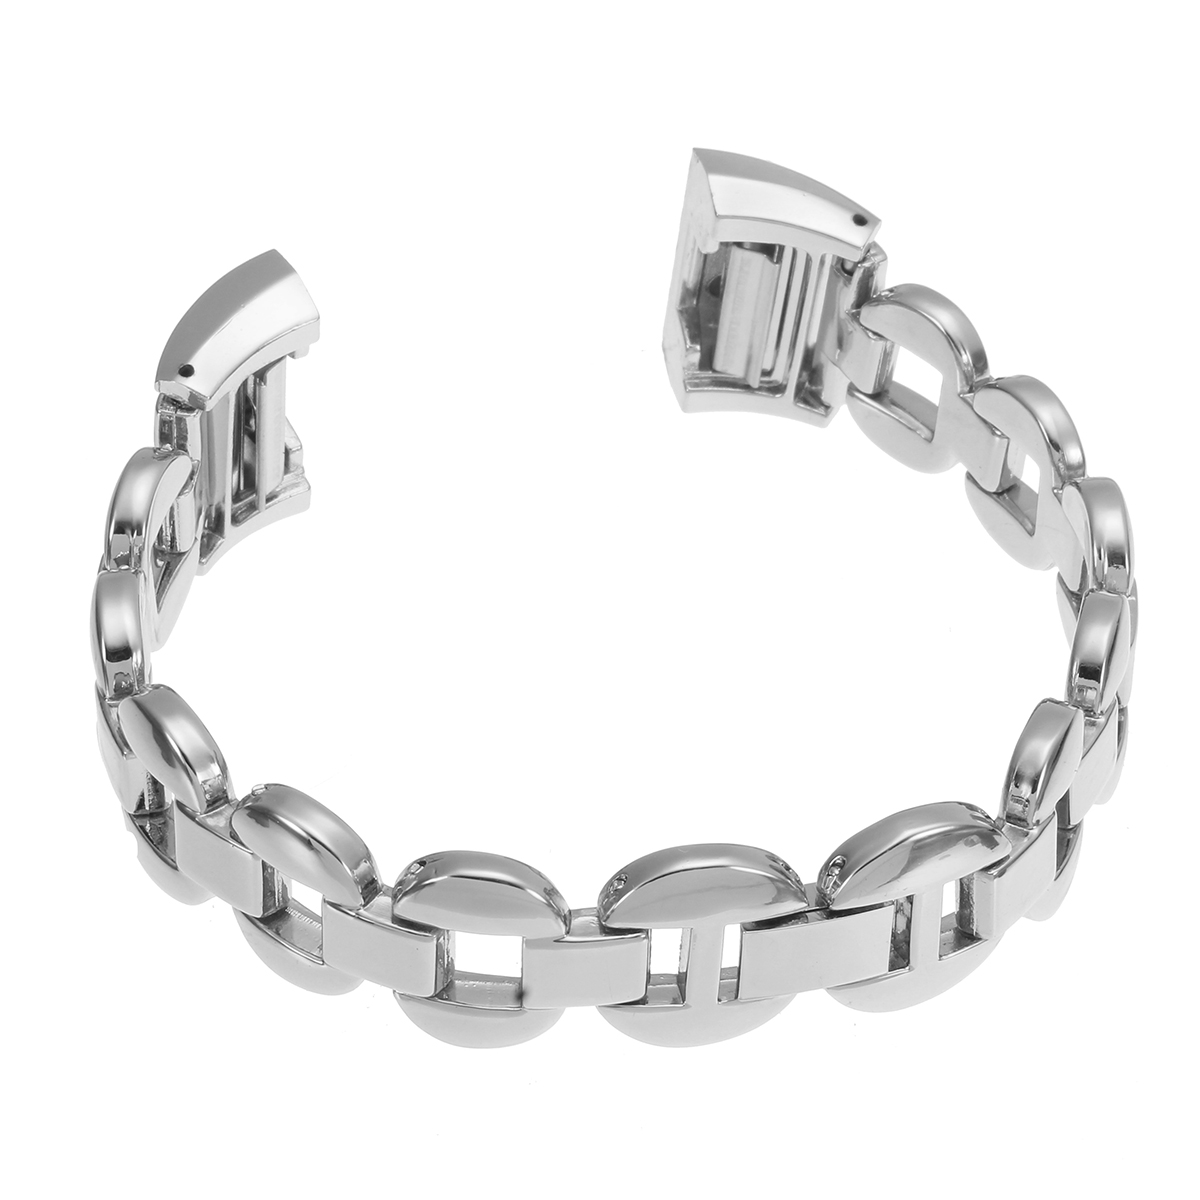 180mm Womens Stainless Steel Crystal Bracelet Band Loop Strap For Fitbit Charge 2 Watch